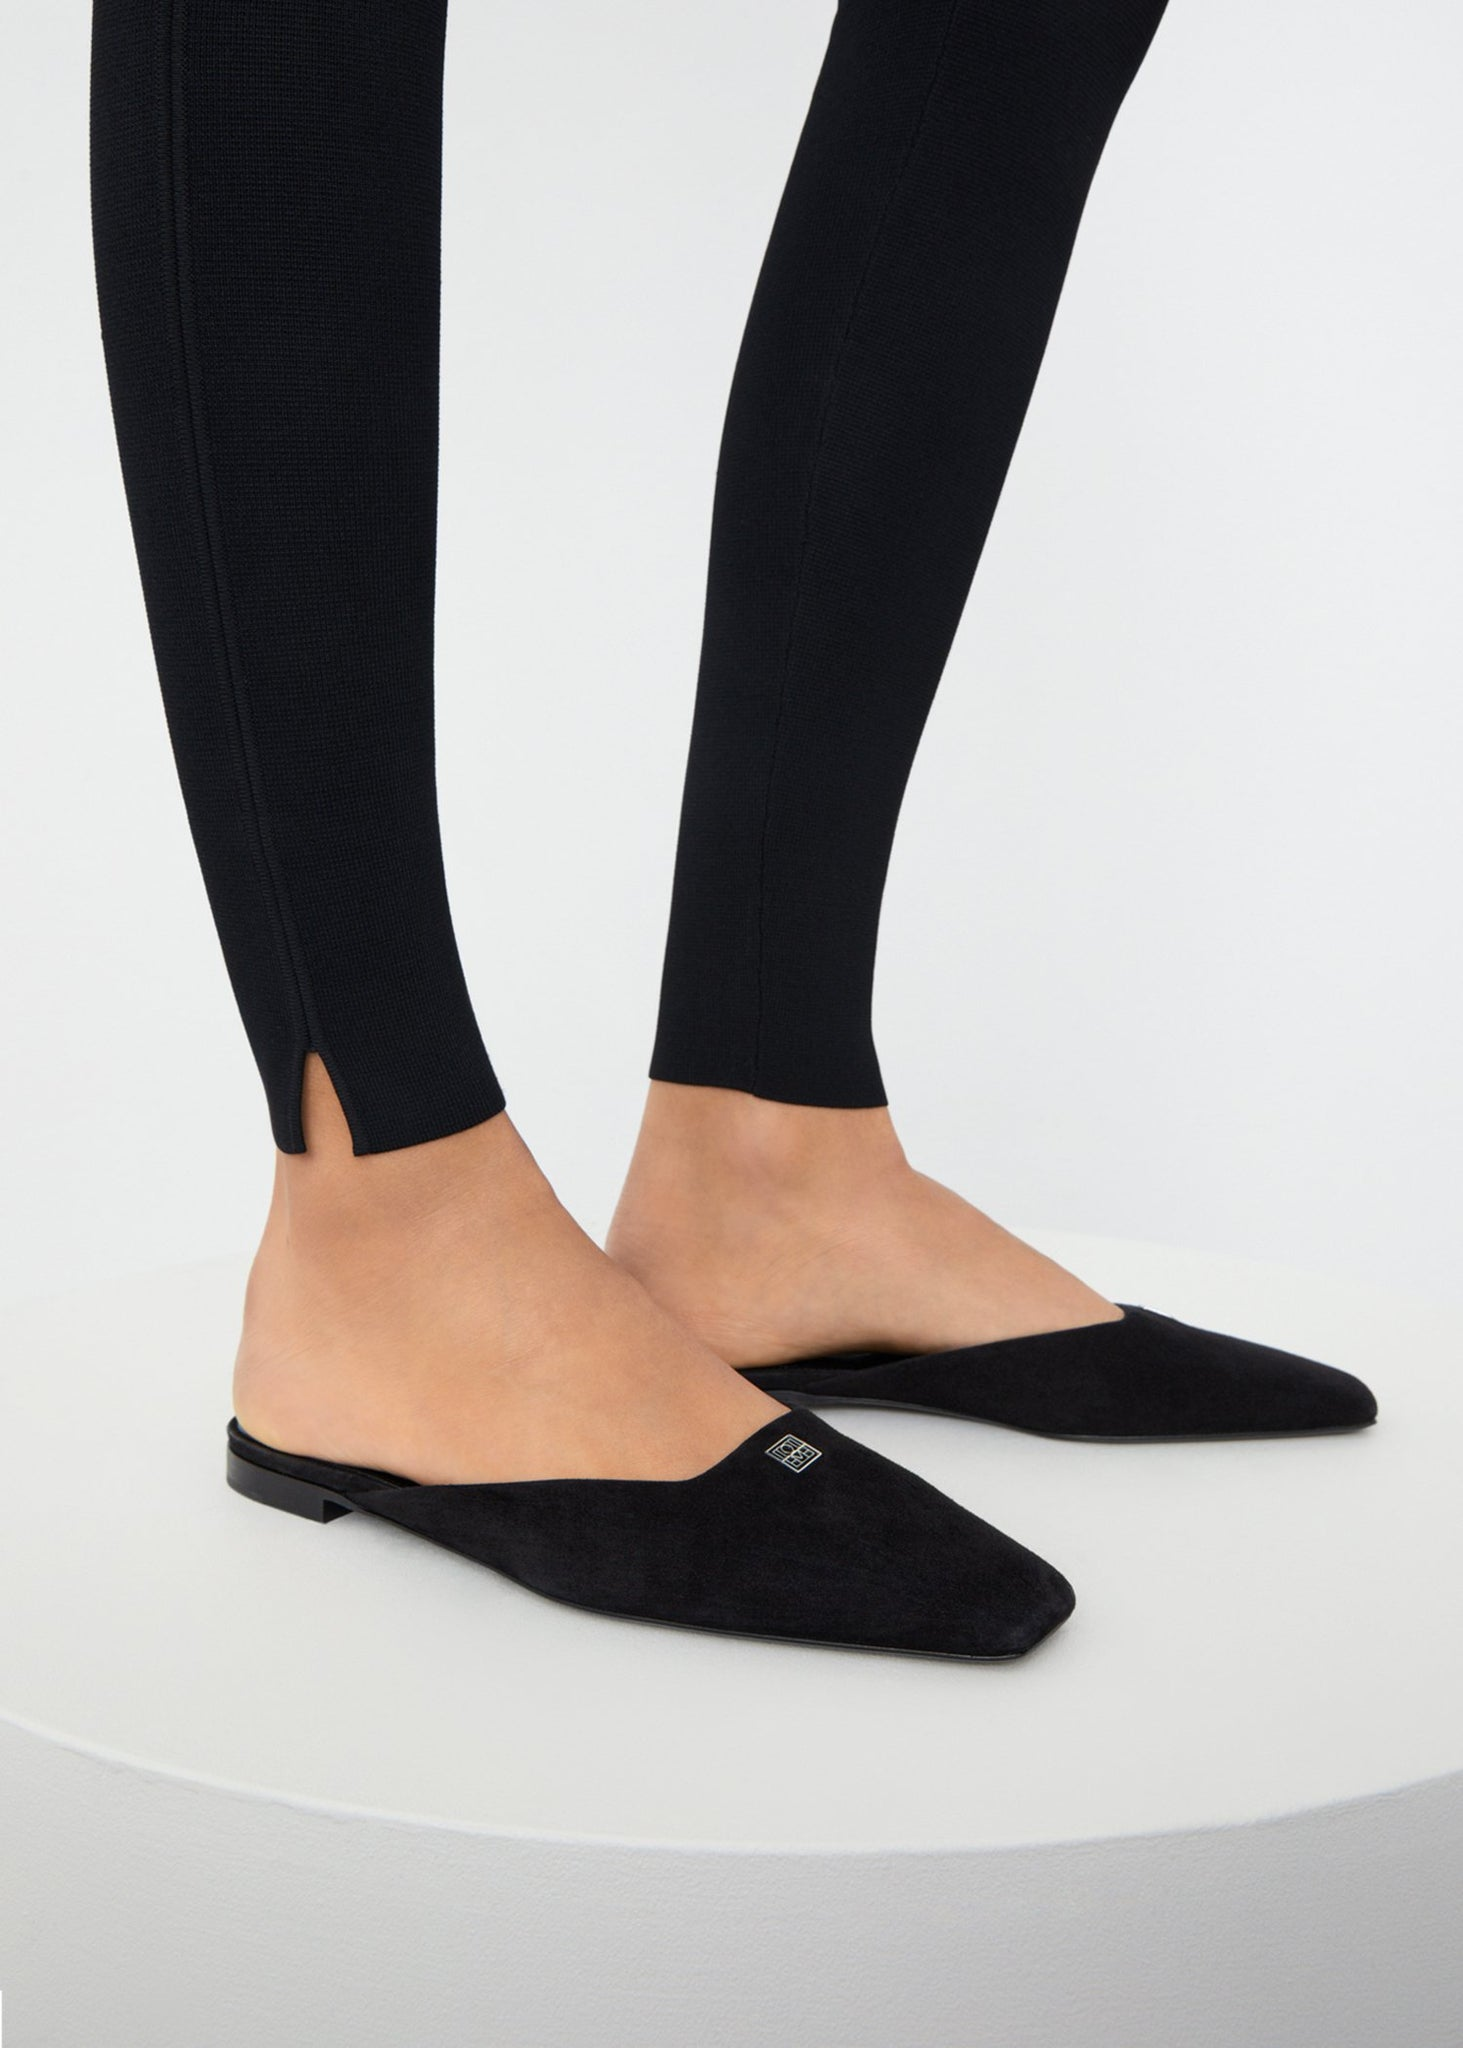 The Flat Mule suede